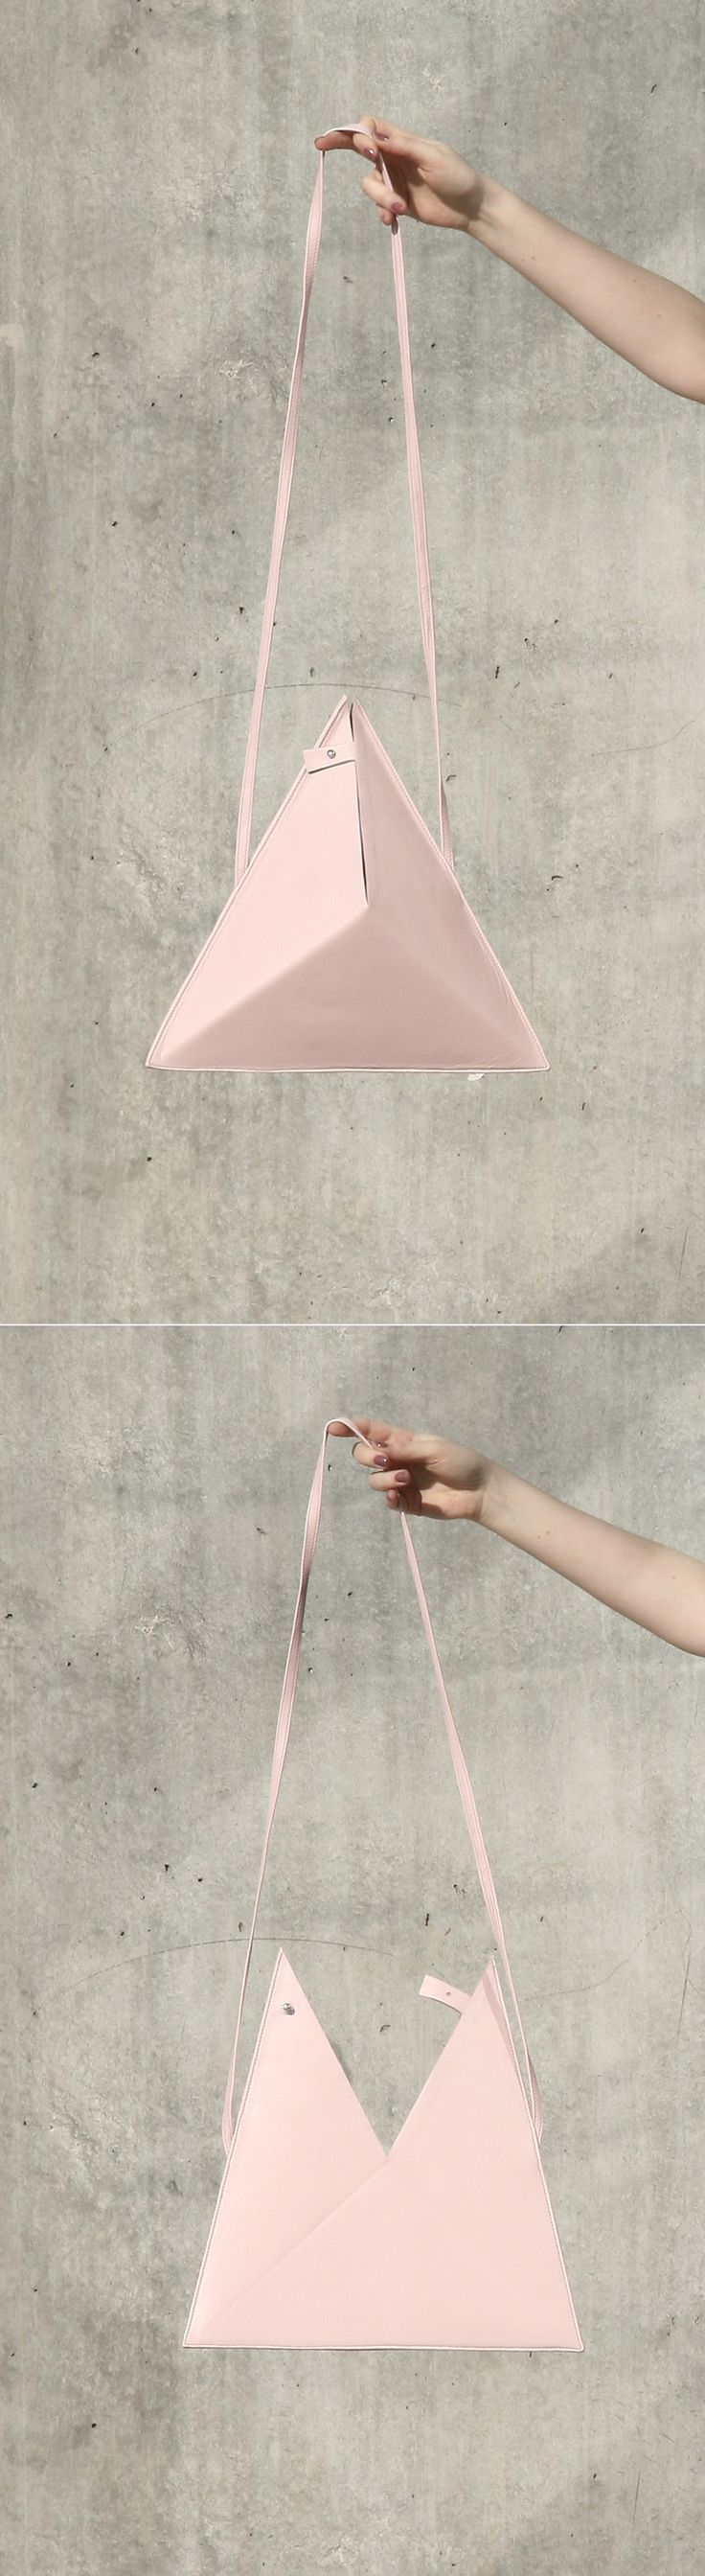 Triangle Bag by IF irinaflorea | minimalist | leather | rose quartz | https://www.facebook.com/irinafloreadesign/